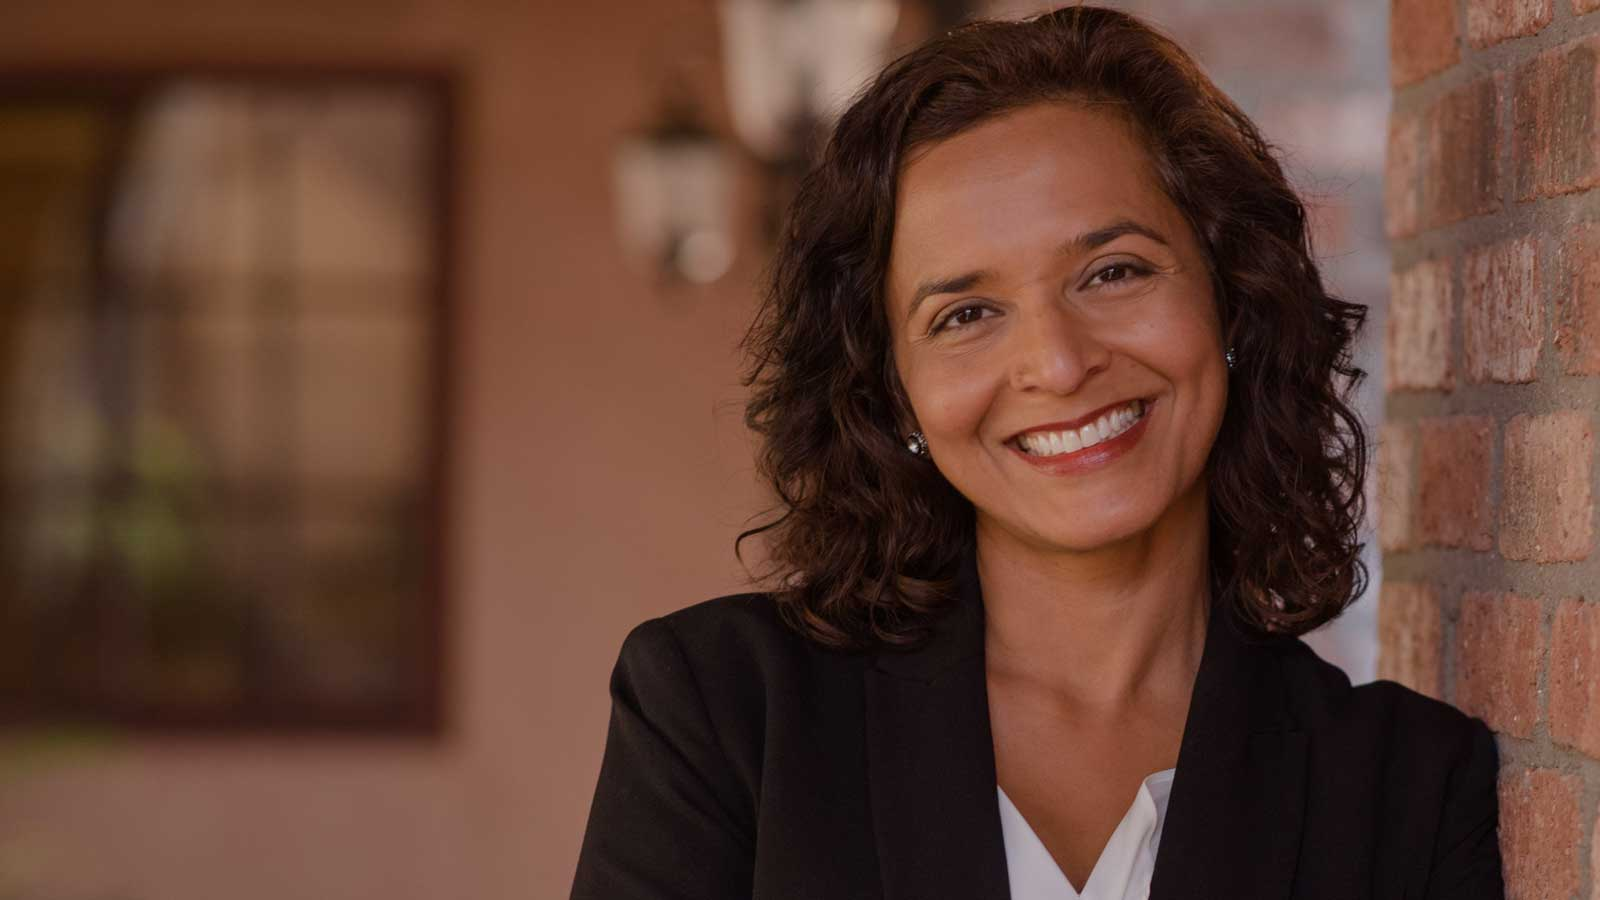 Dr Hiral Tipirneni - ER Physician and Cancer Research Advocate Arizona's 8th District